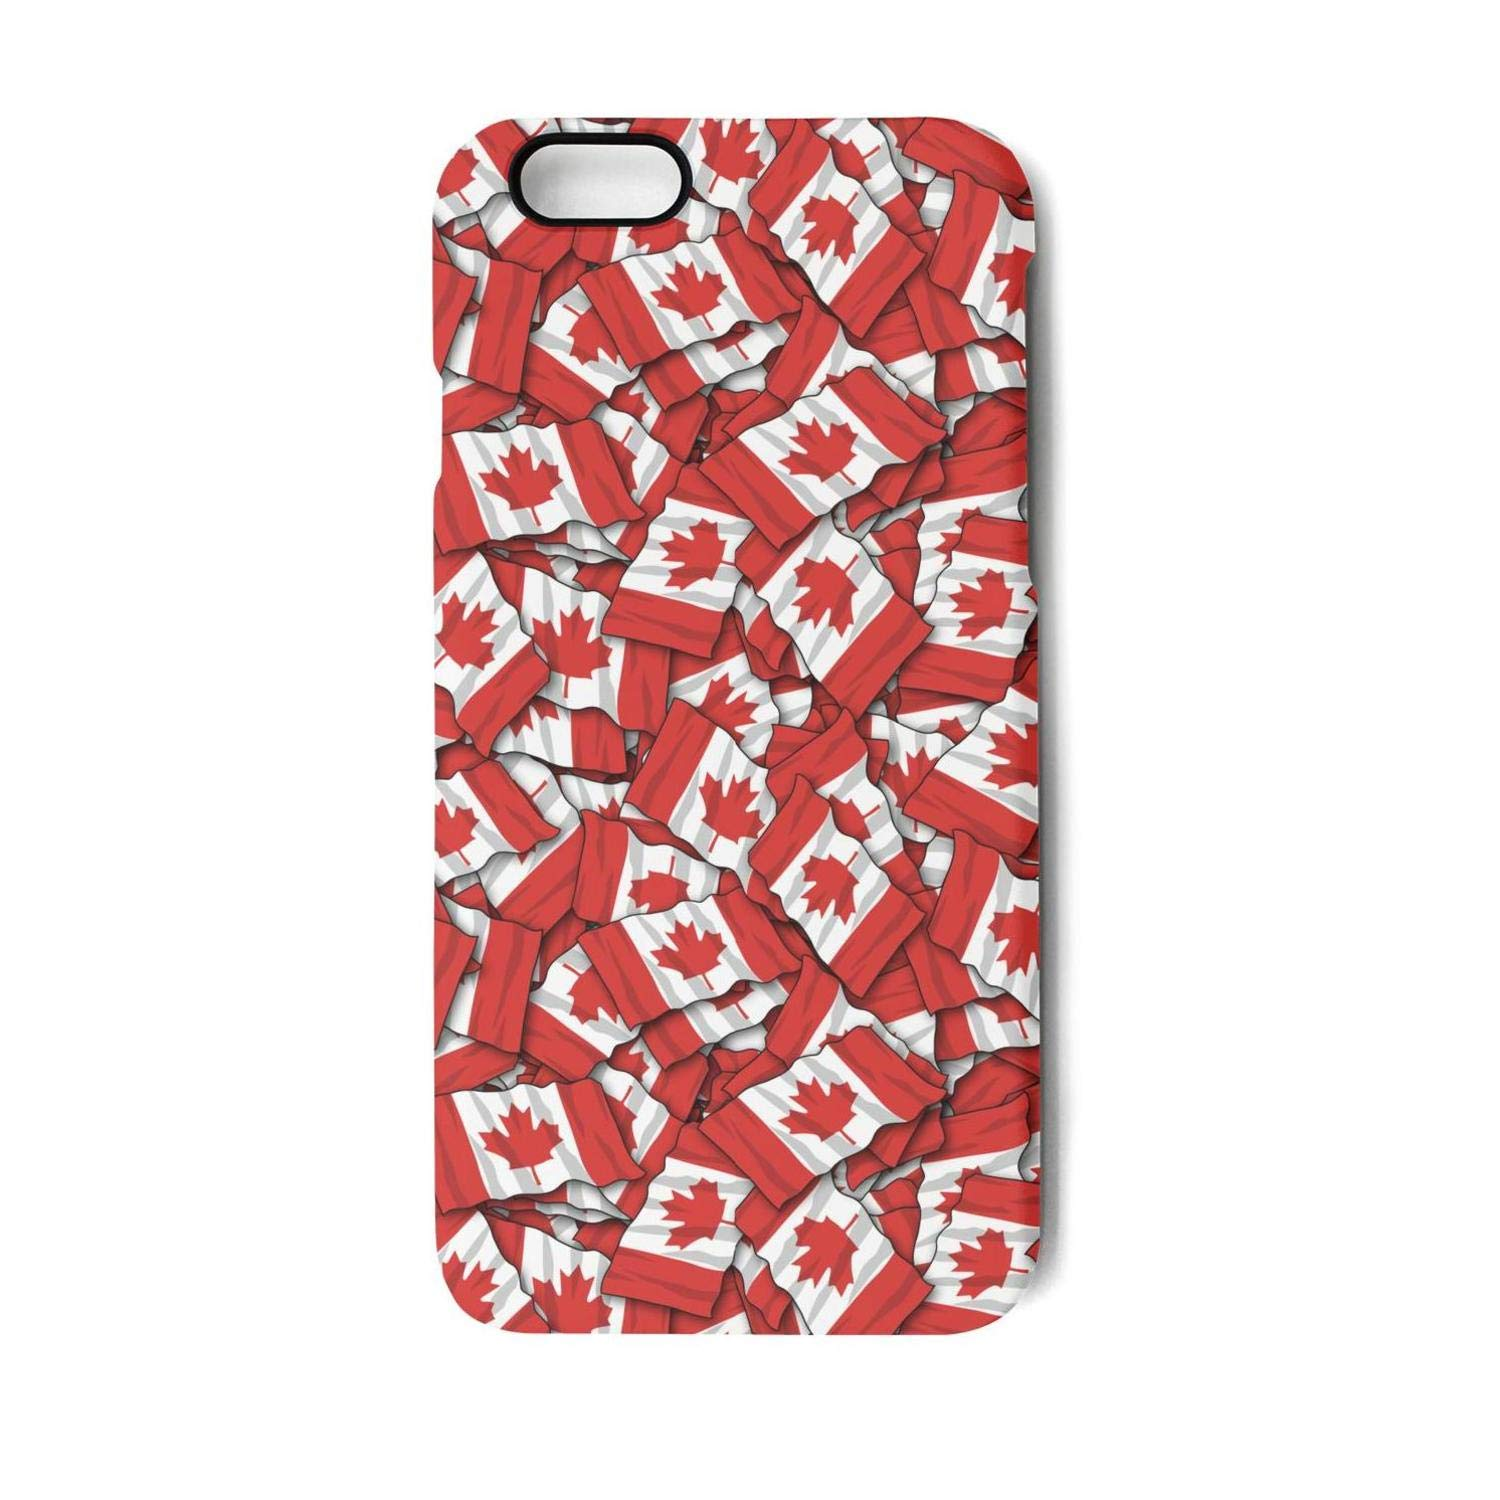 f77c9729f5d Amazon.com: Vekq iPhone 6 plus/6s Plus Case Canadian Flag Pattern Shock  Absorption TPU Back Cover Compatible with iPhone 6 plus/6s Plus: Cell  Phones & ...